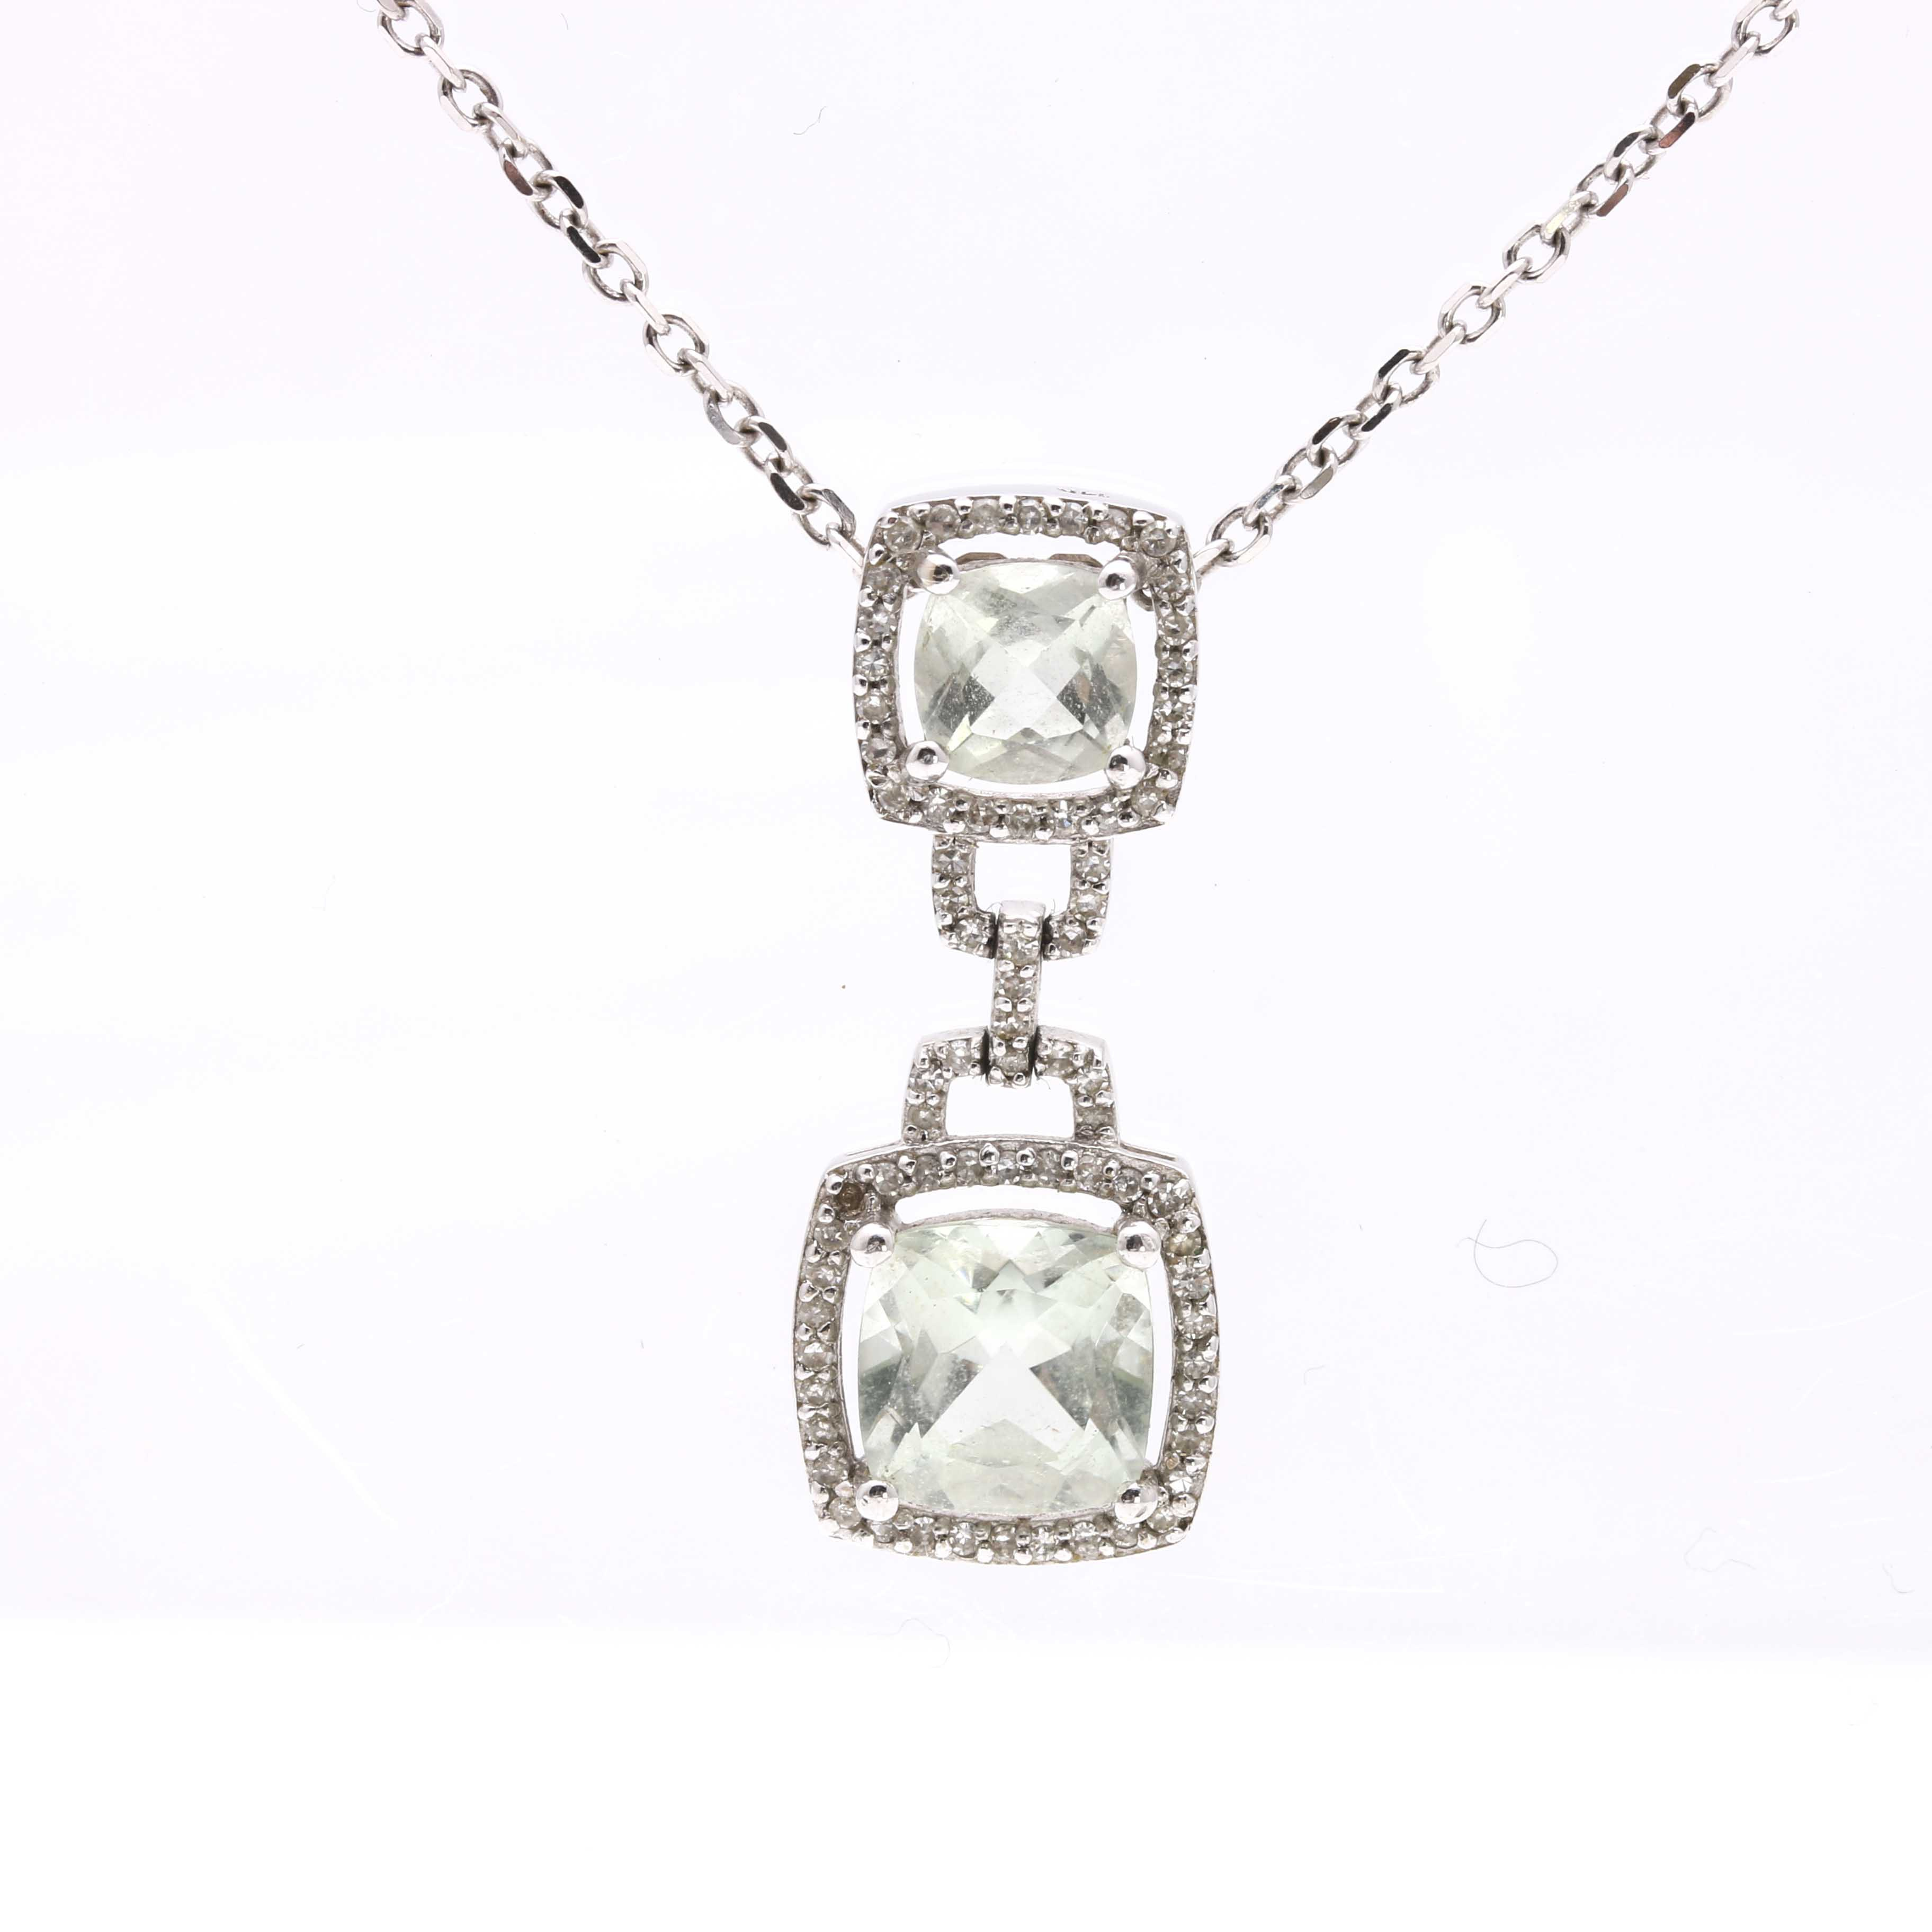 14K White Gold Praseolite and Diamond Necklace